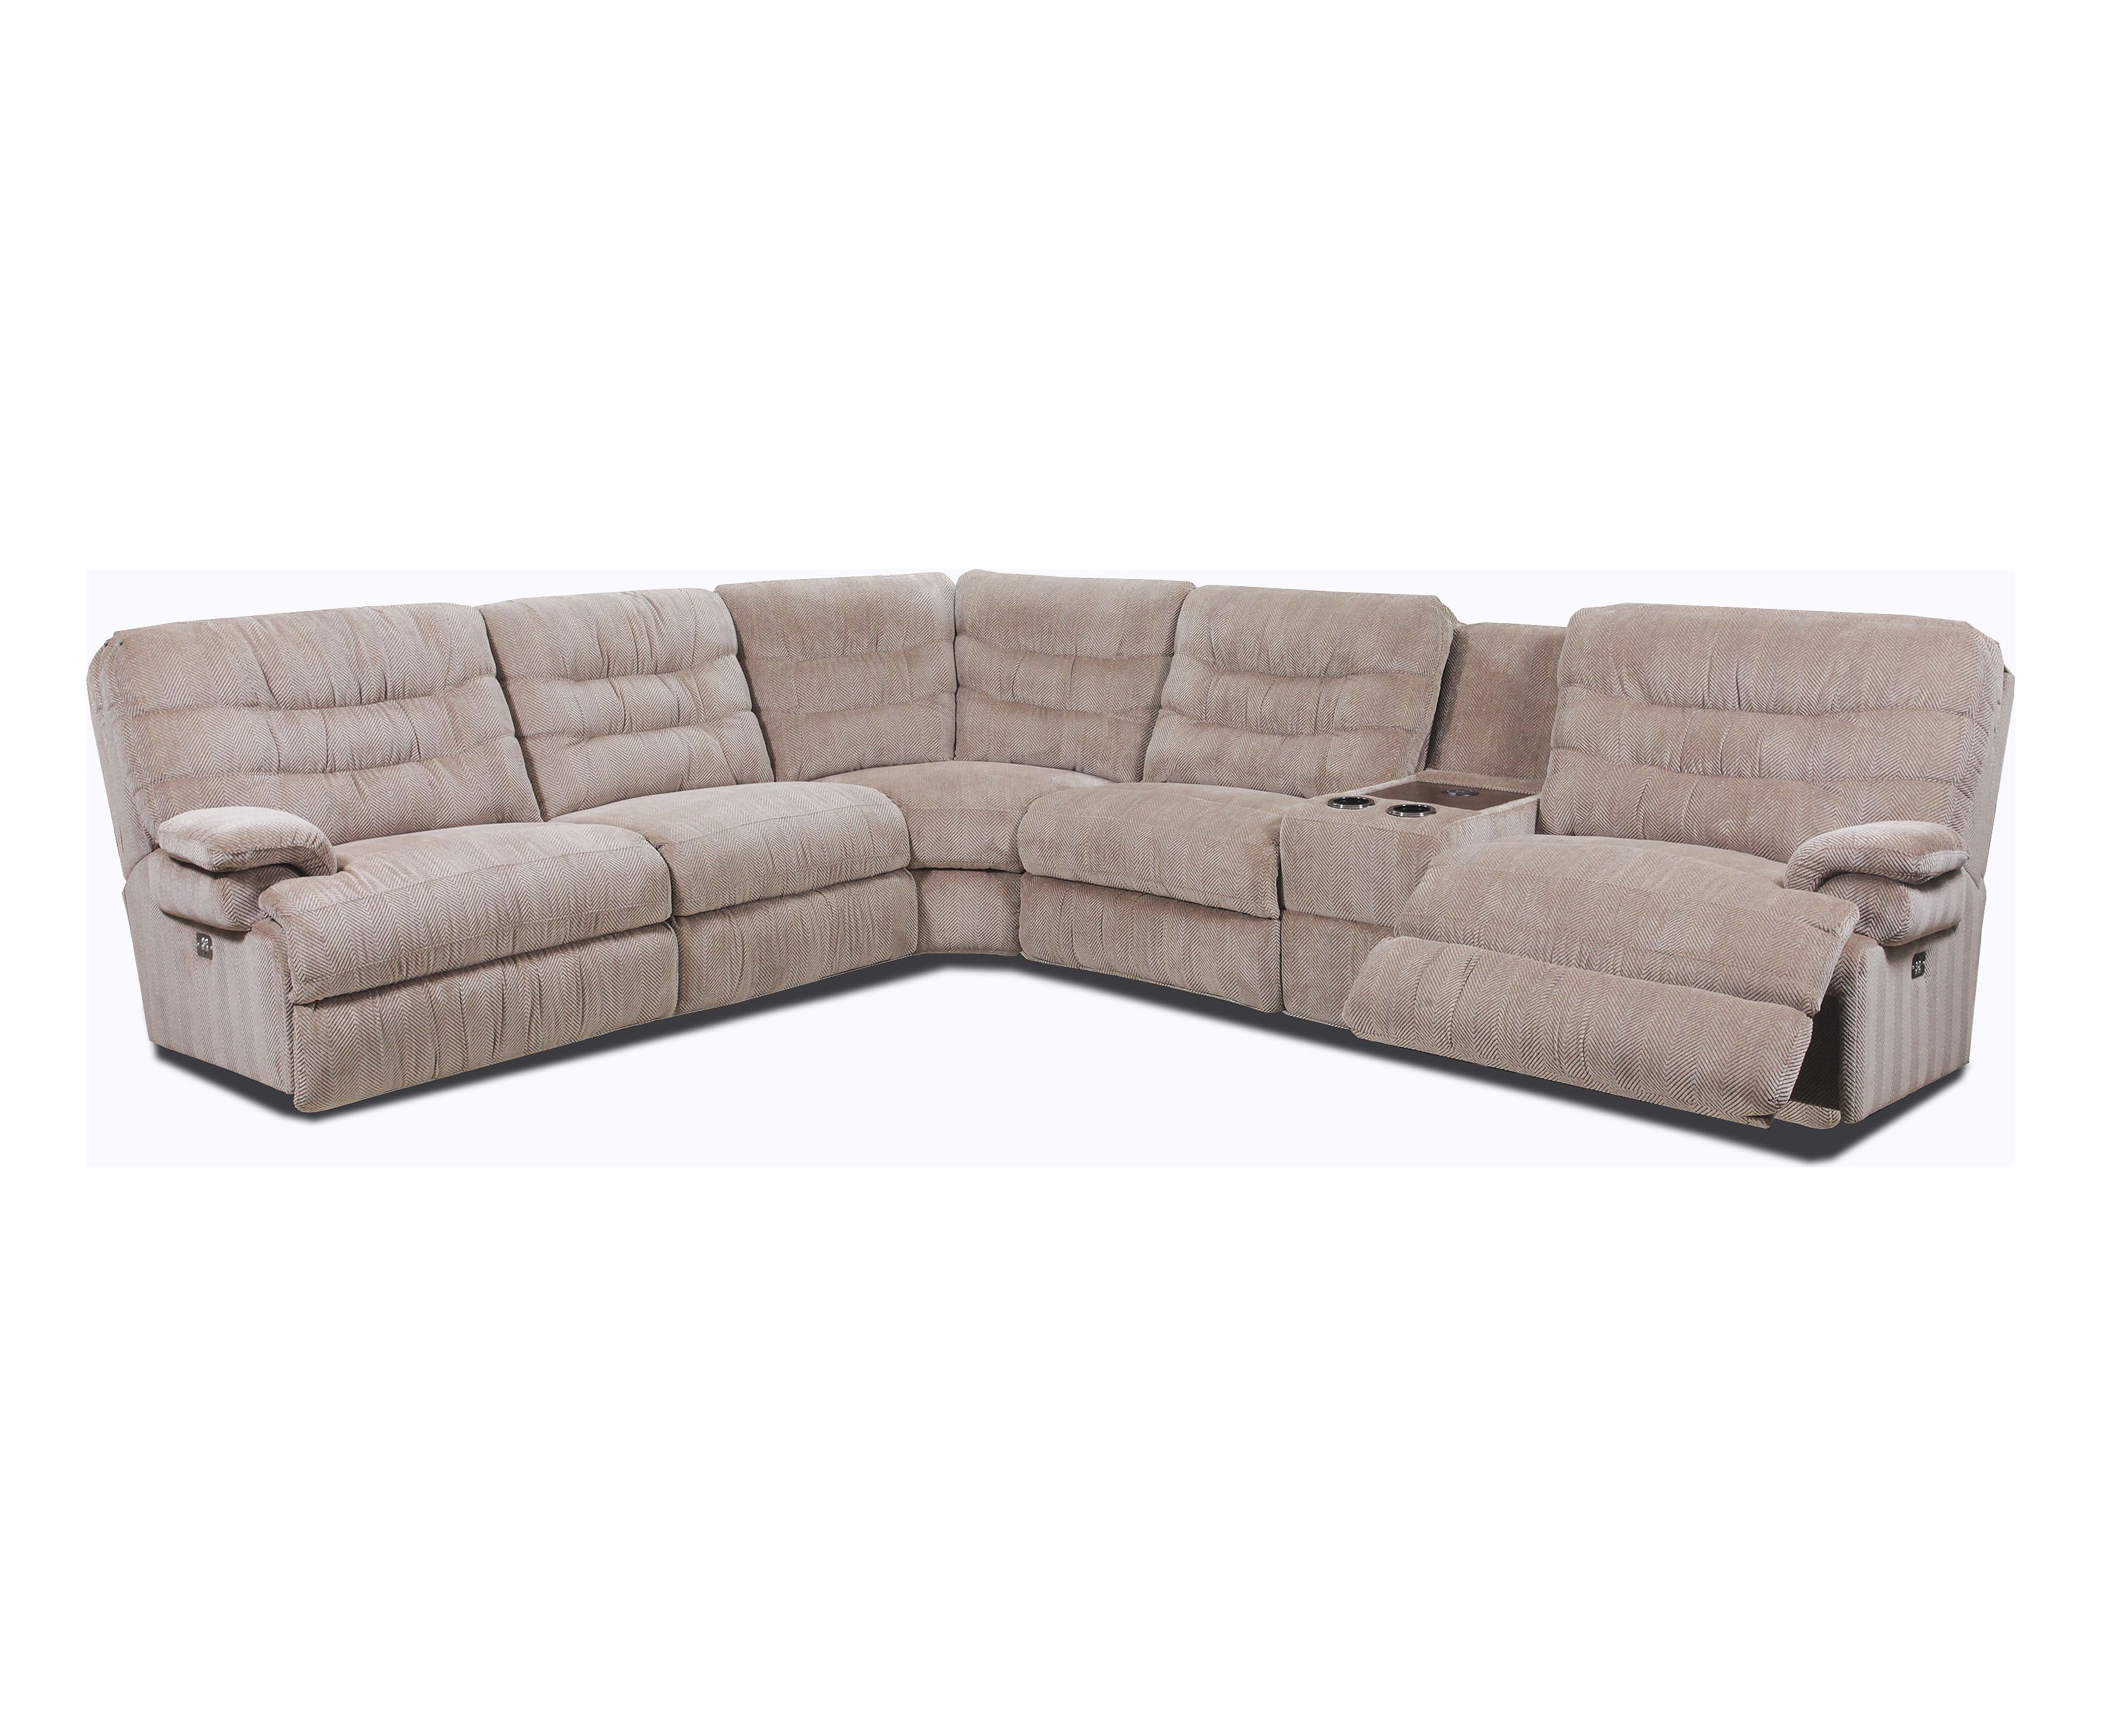 Elegant Peace 296 Reclining Sectional. By Lane